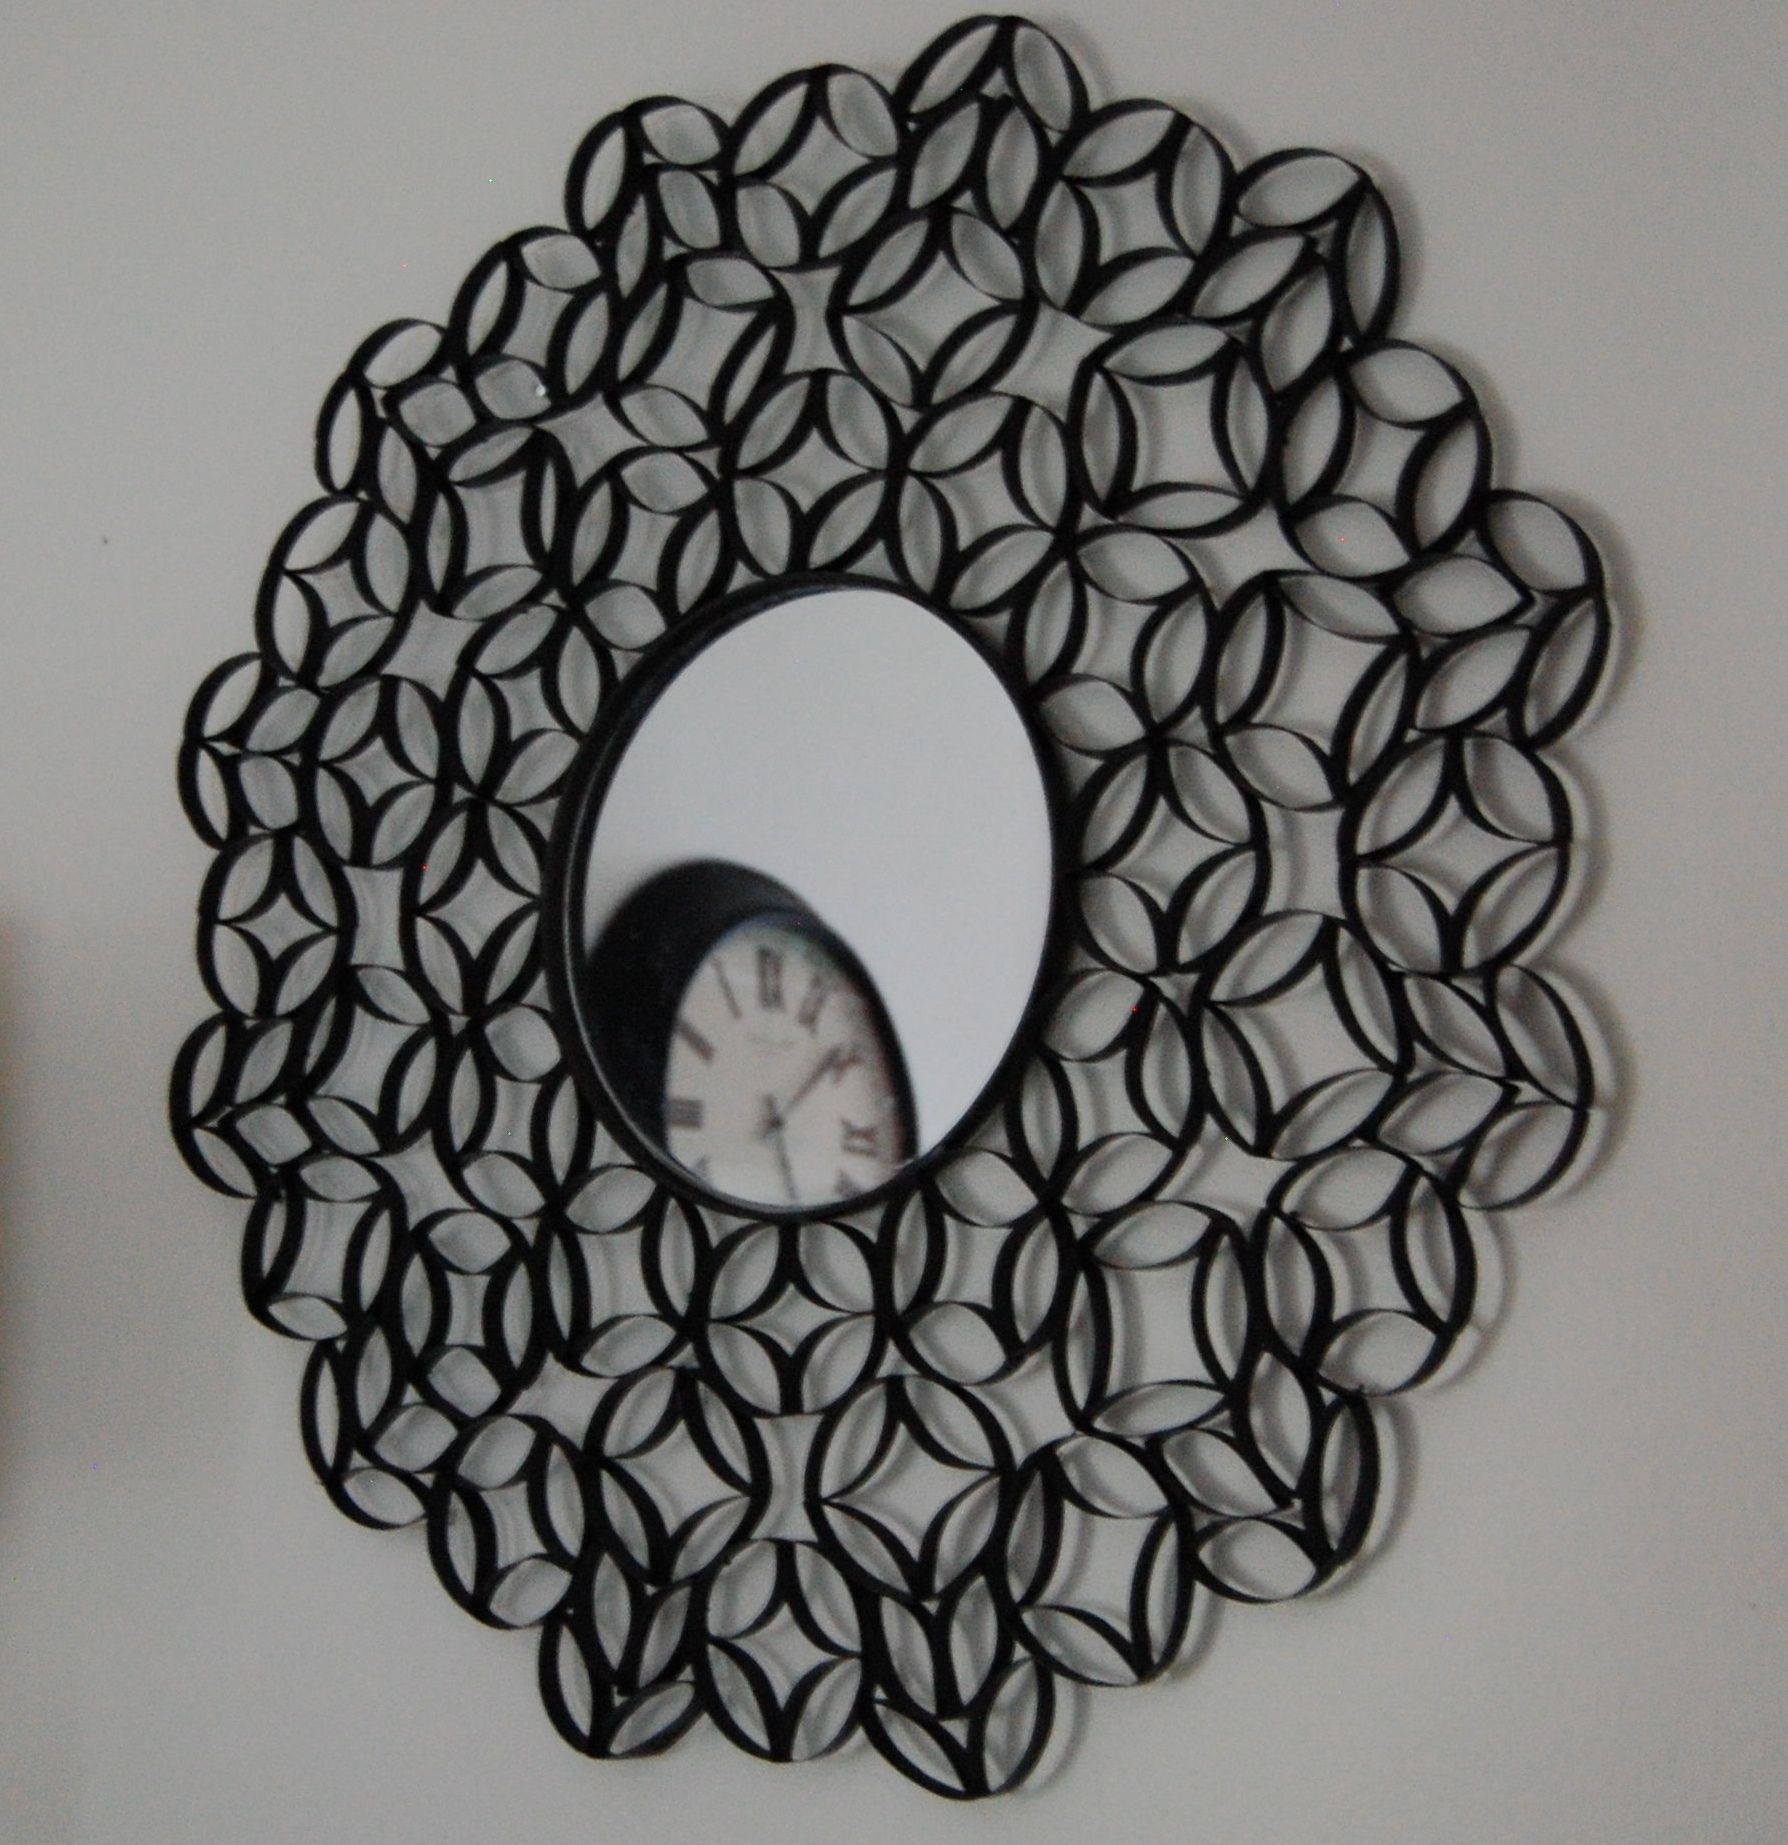 Toilet Paper Roll Wall Art Just Spray Paint And Voila! | Wall Art With Regard To Most Popular Toilet Paper Roll Wall Art (View 13 of 20)